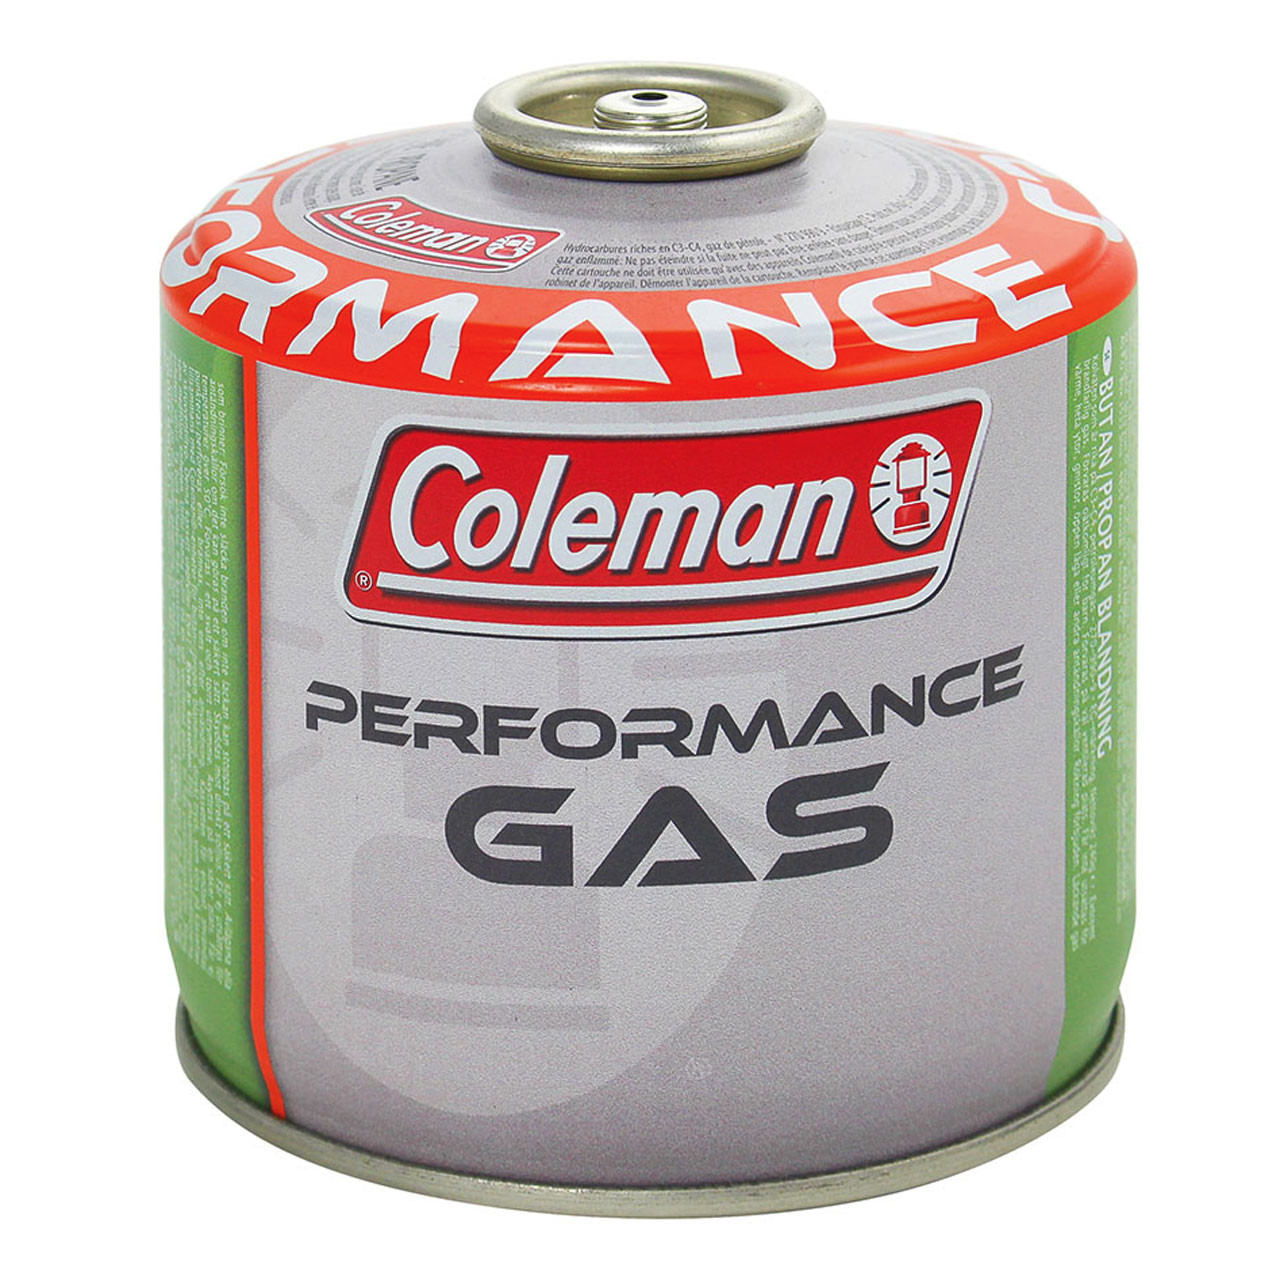 Coleman C300 Performance gas cartridge from Camperite Leisure